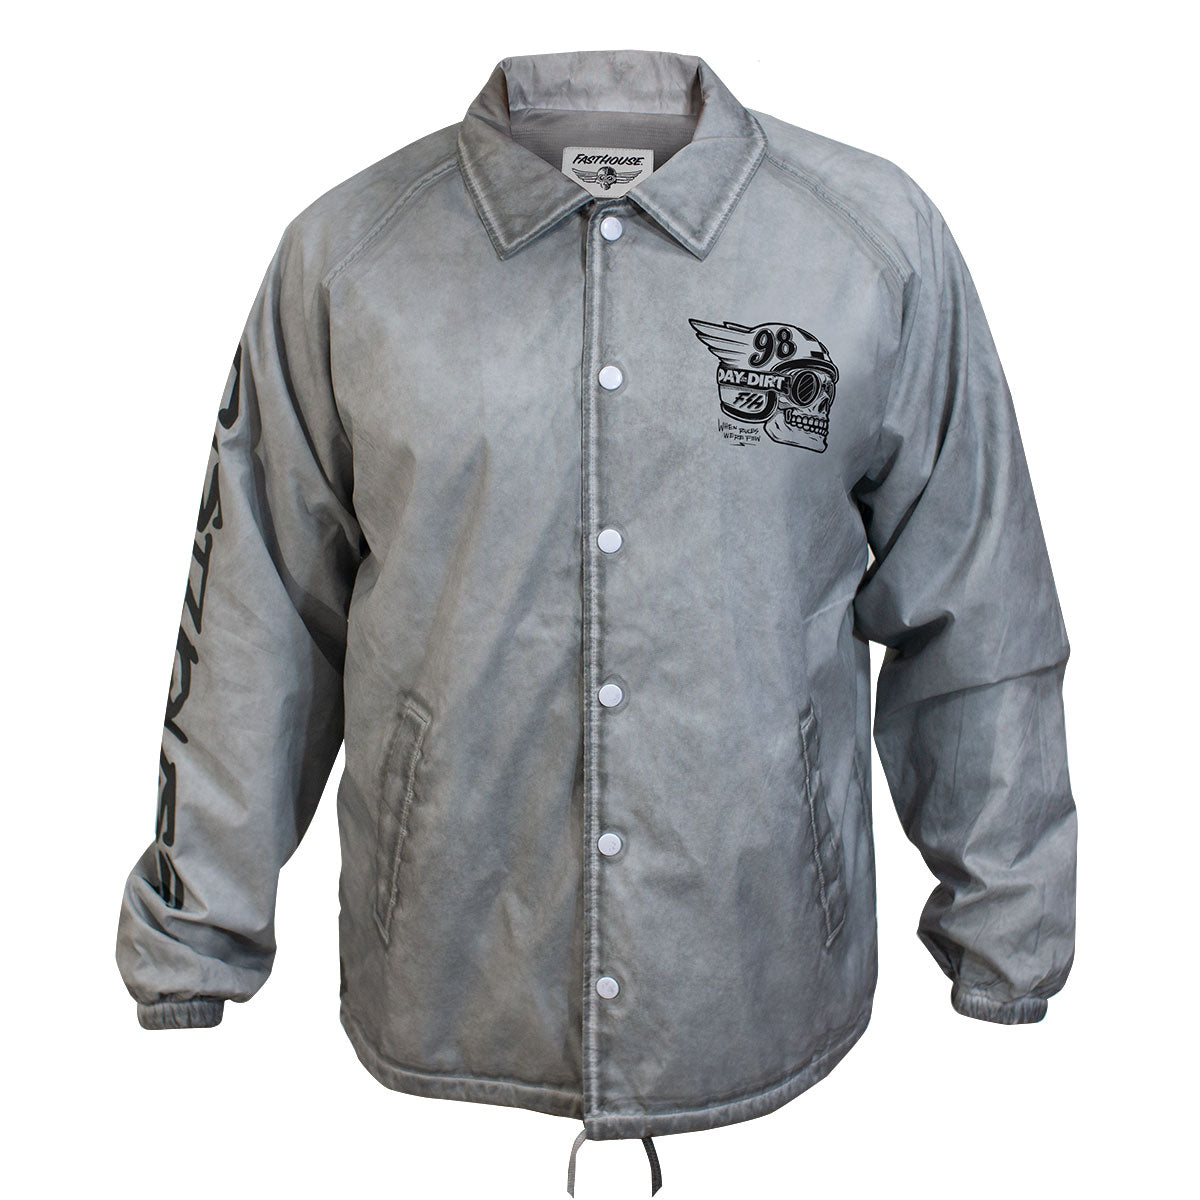 Fasthouse - Day in the Dirt Victory Jacket - Vintage Silver